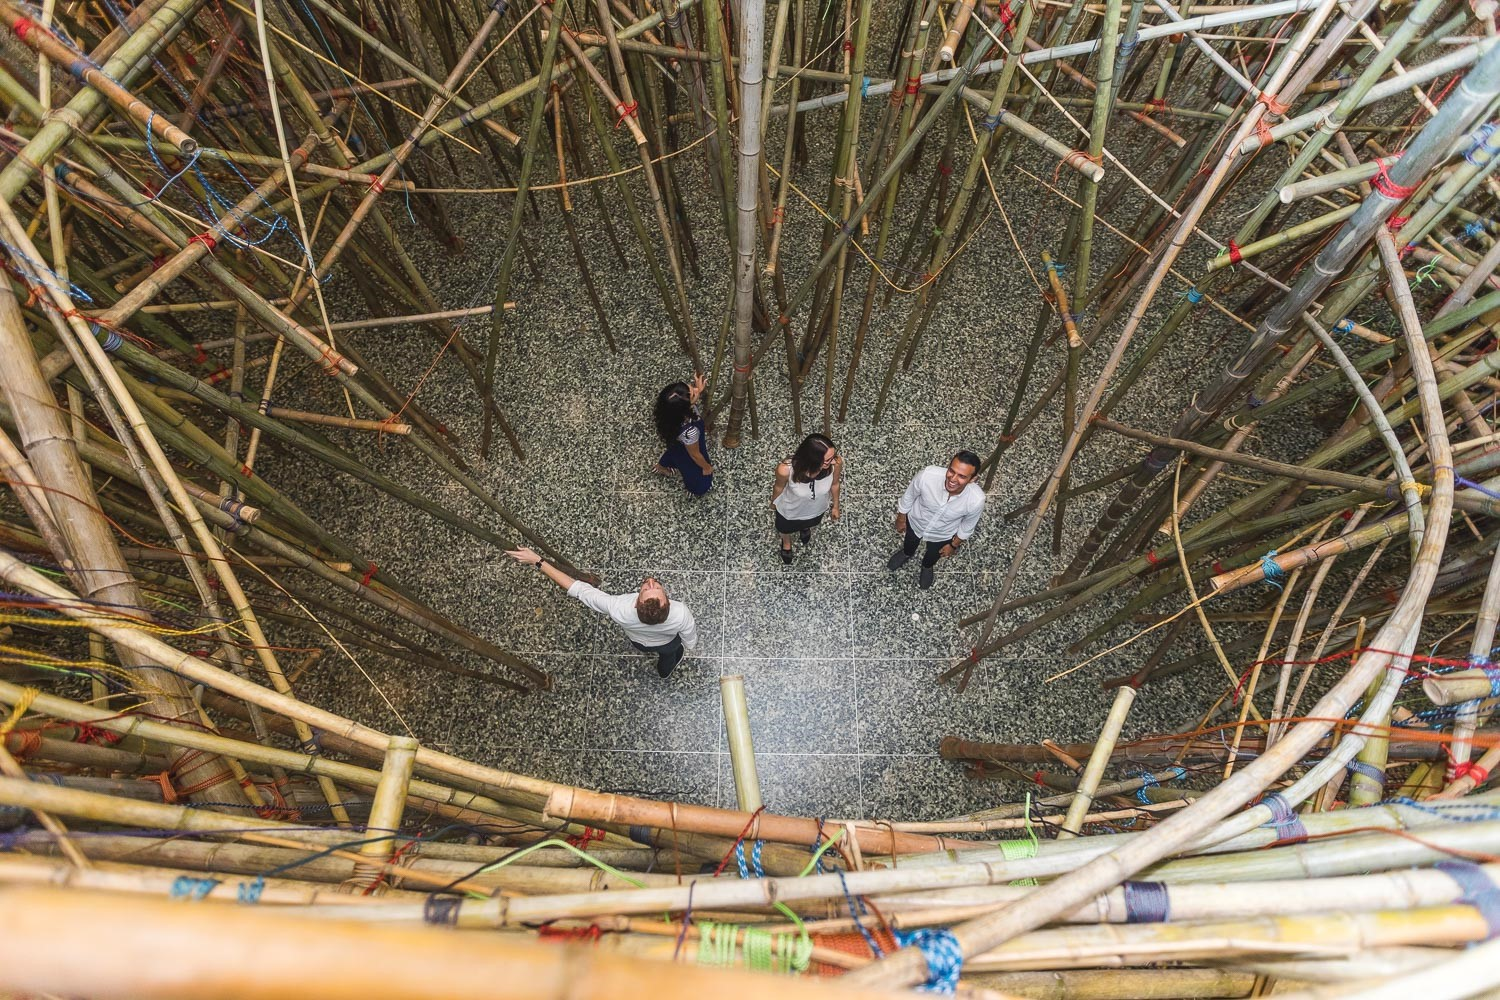 Mike + Doug Starn: Big Bambú - adults at ground level, view from above